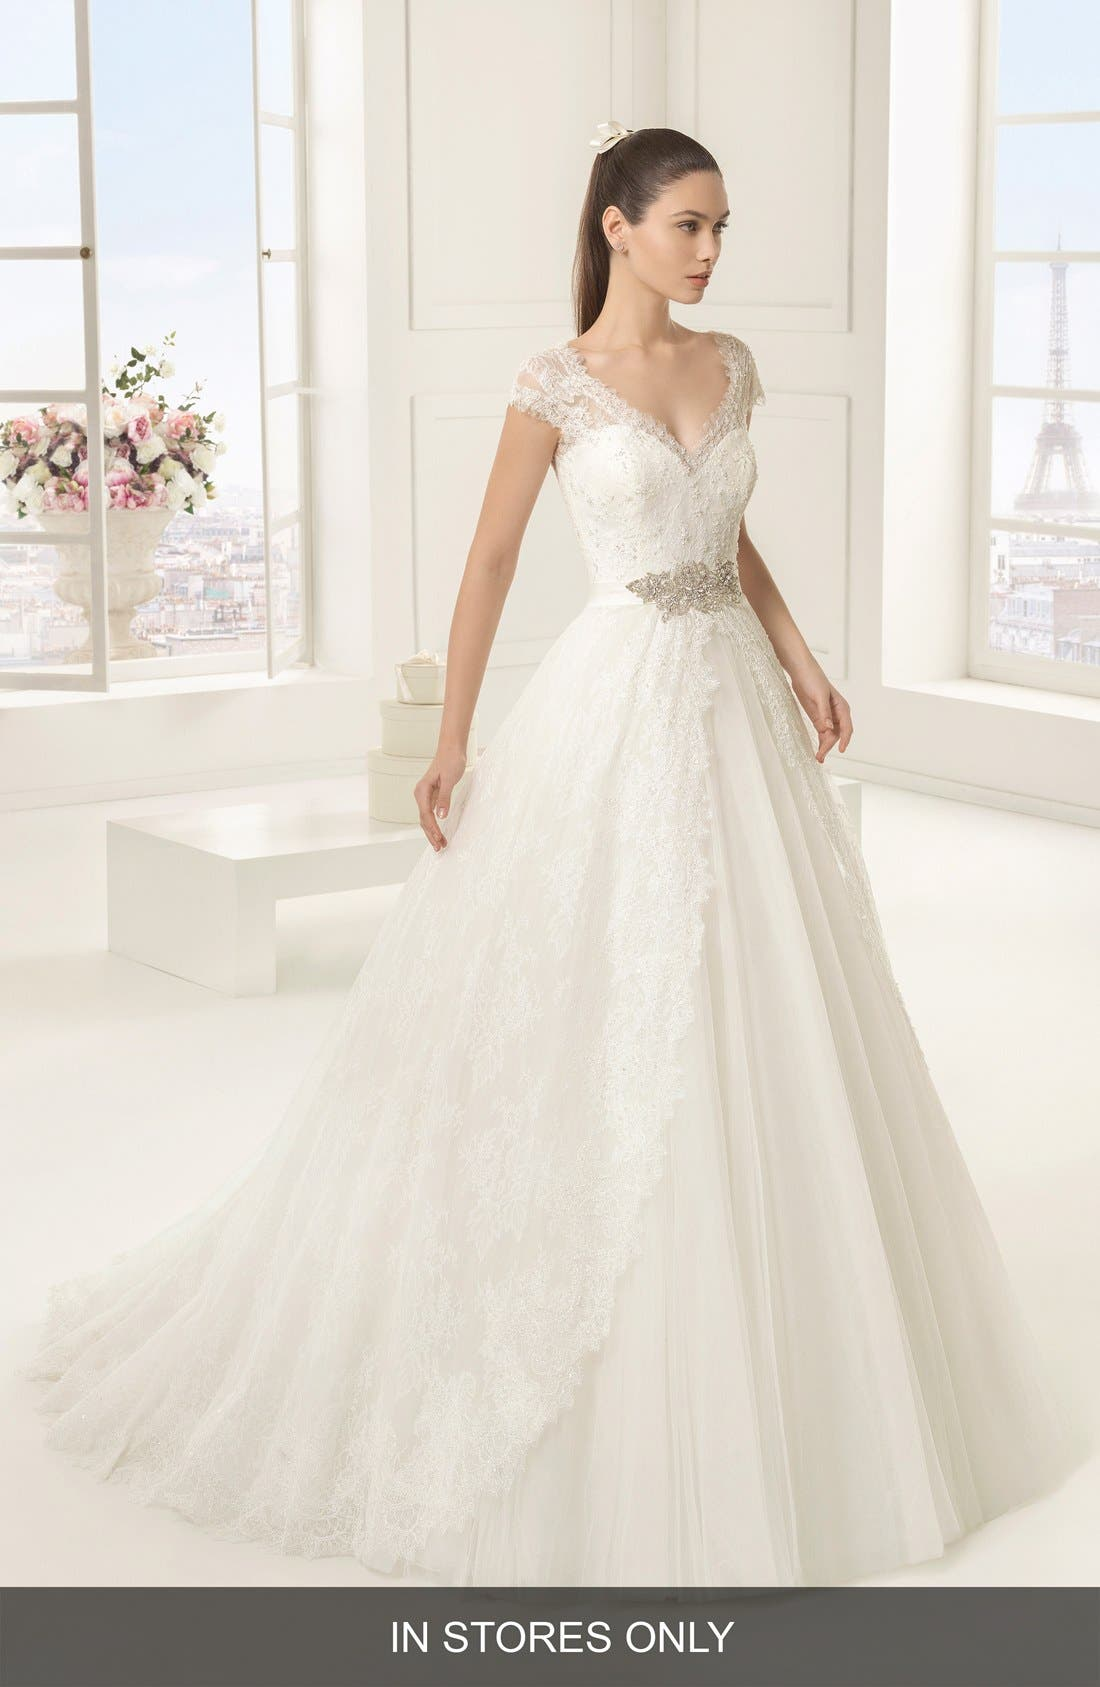 Rosa Clara 'Exotico' Beaded Lace & Tulle Ballgown (In Stores Only)